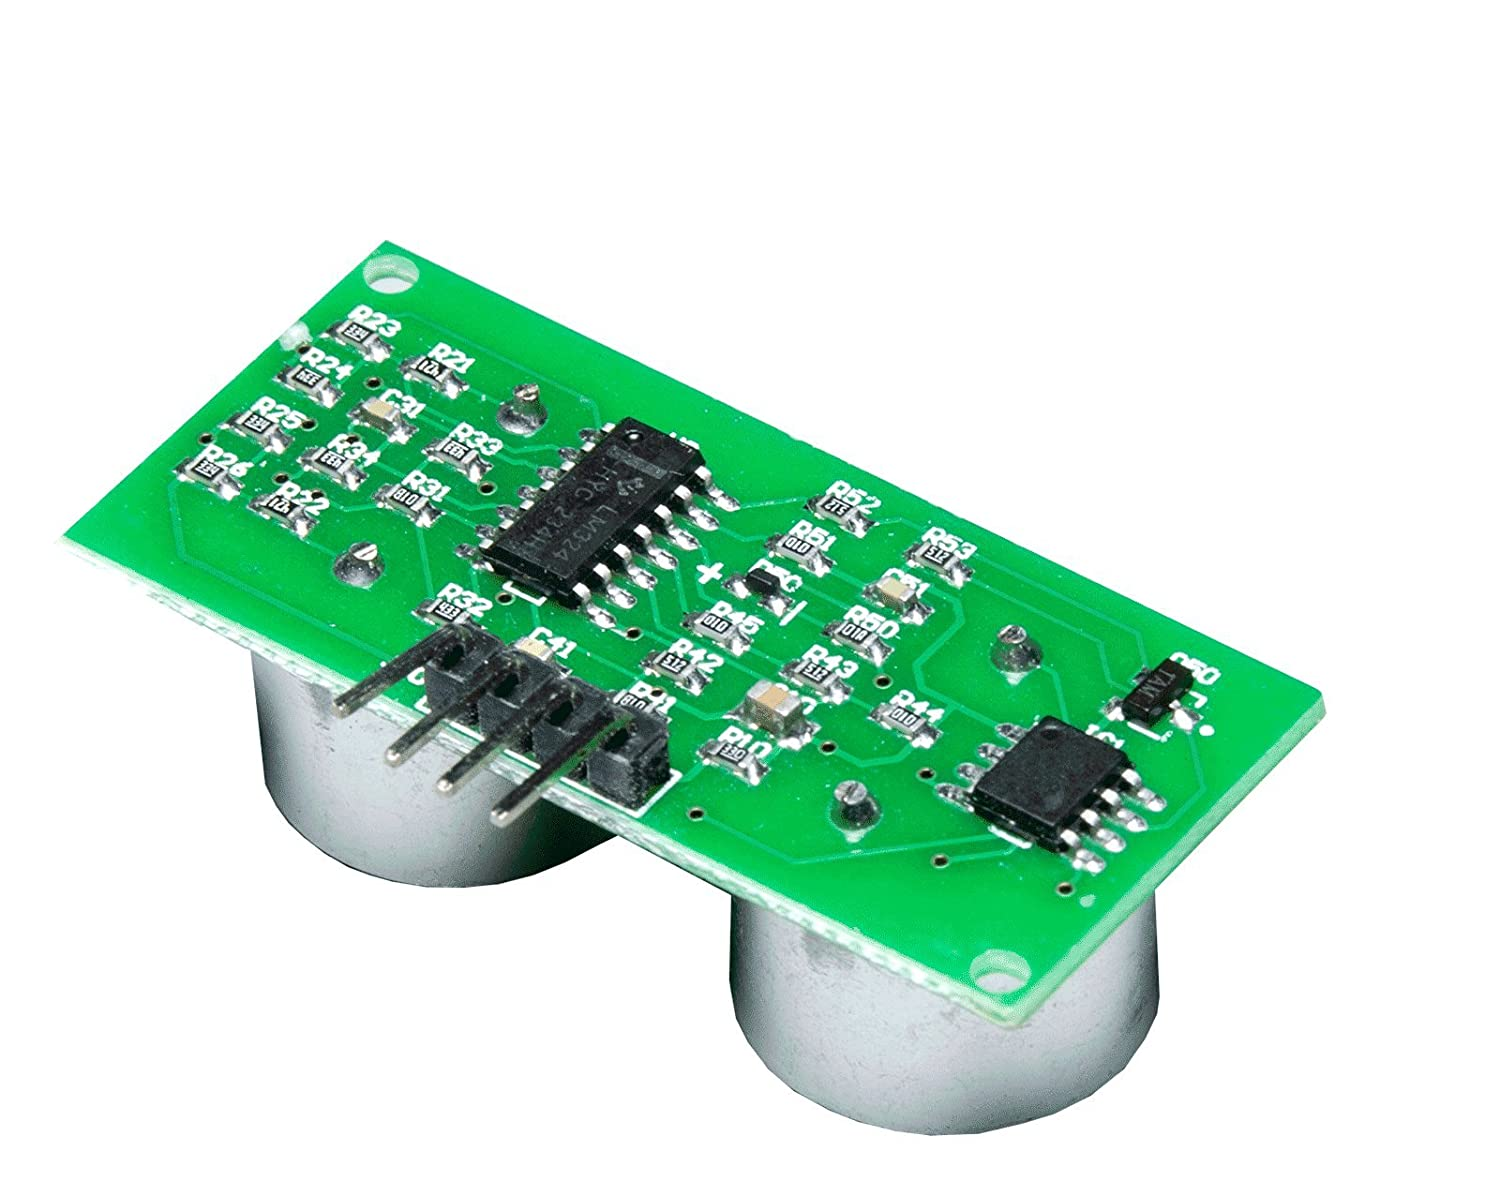 High Accuracy Ultrasonic Sensor Industrial Scientific Interfacing Sensors With Pic Microcontroller